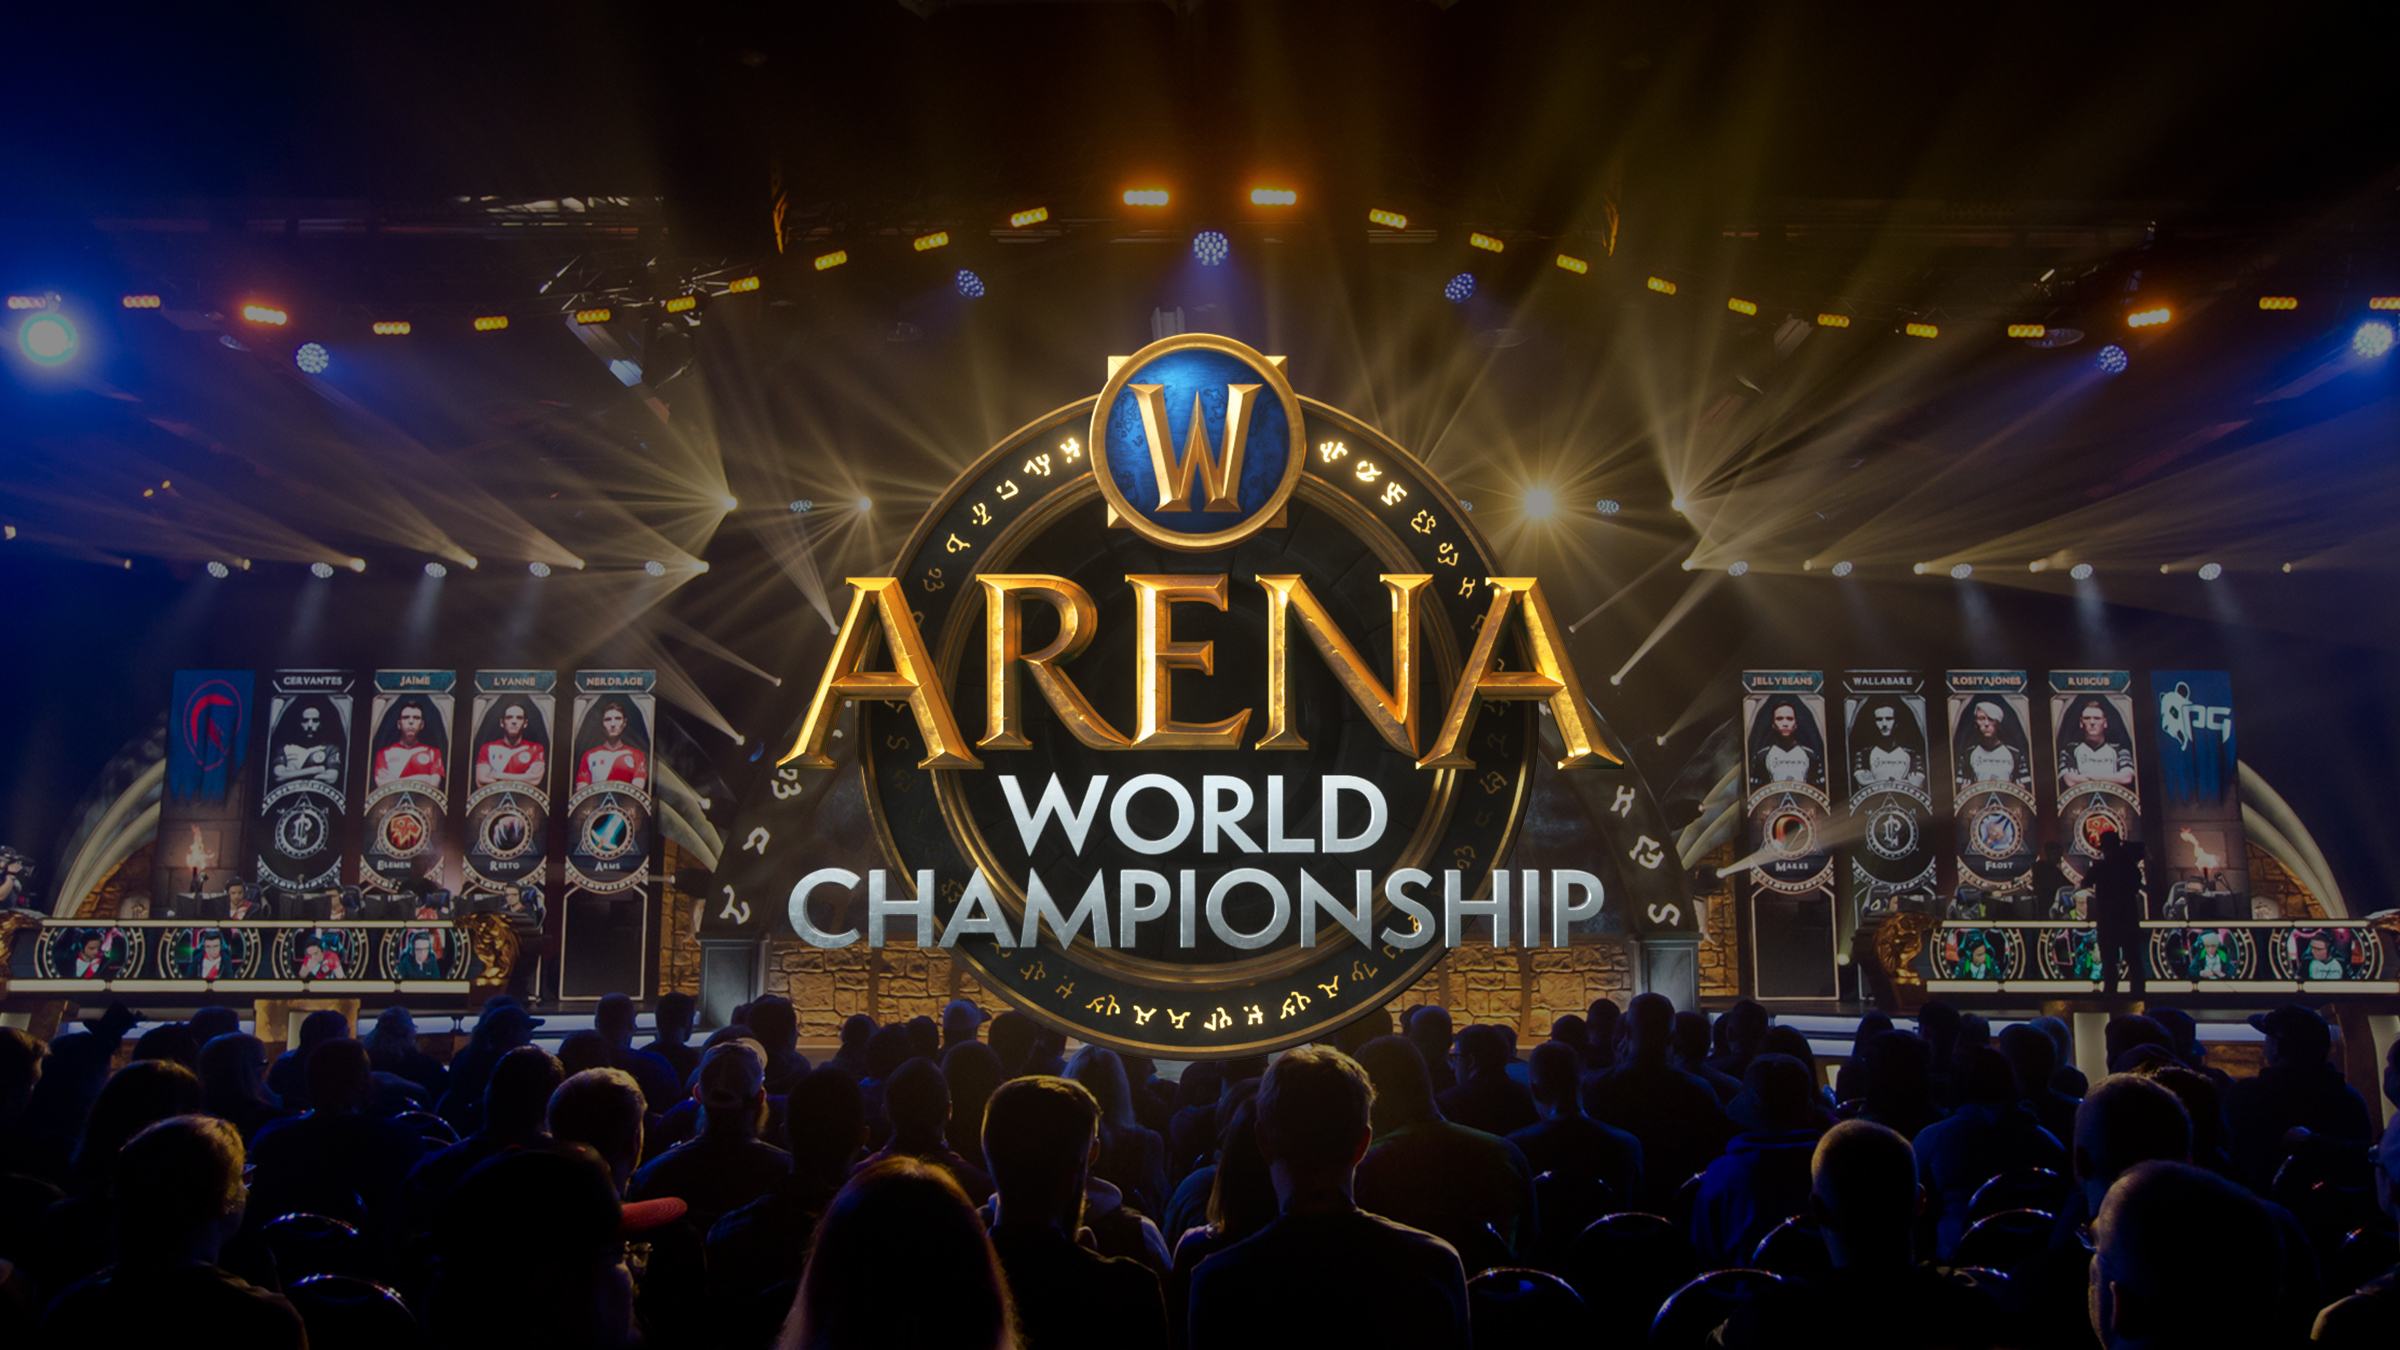 Arena World Championship at BlizzCon: A Viewer's Guide